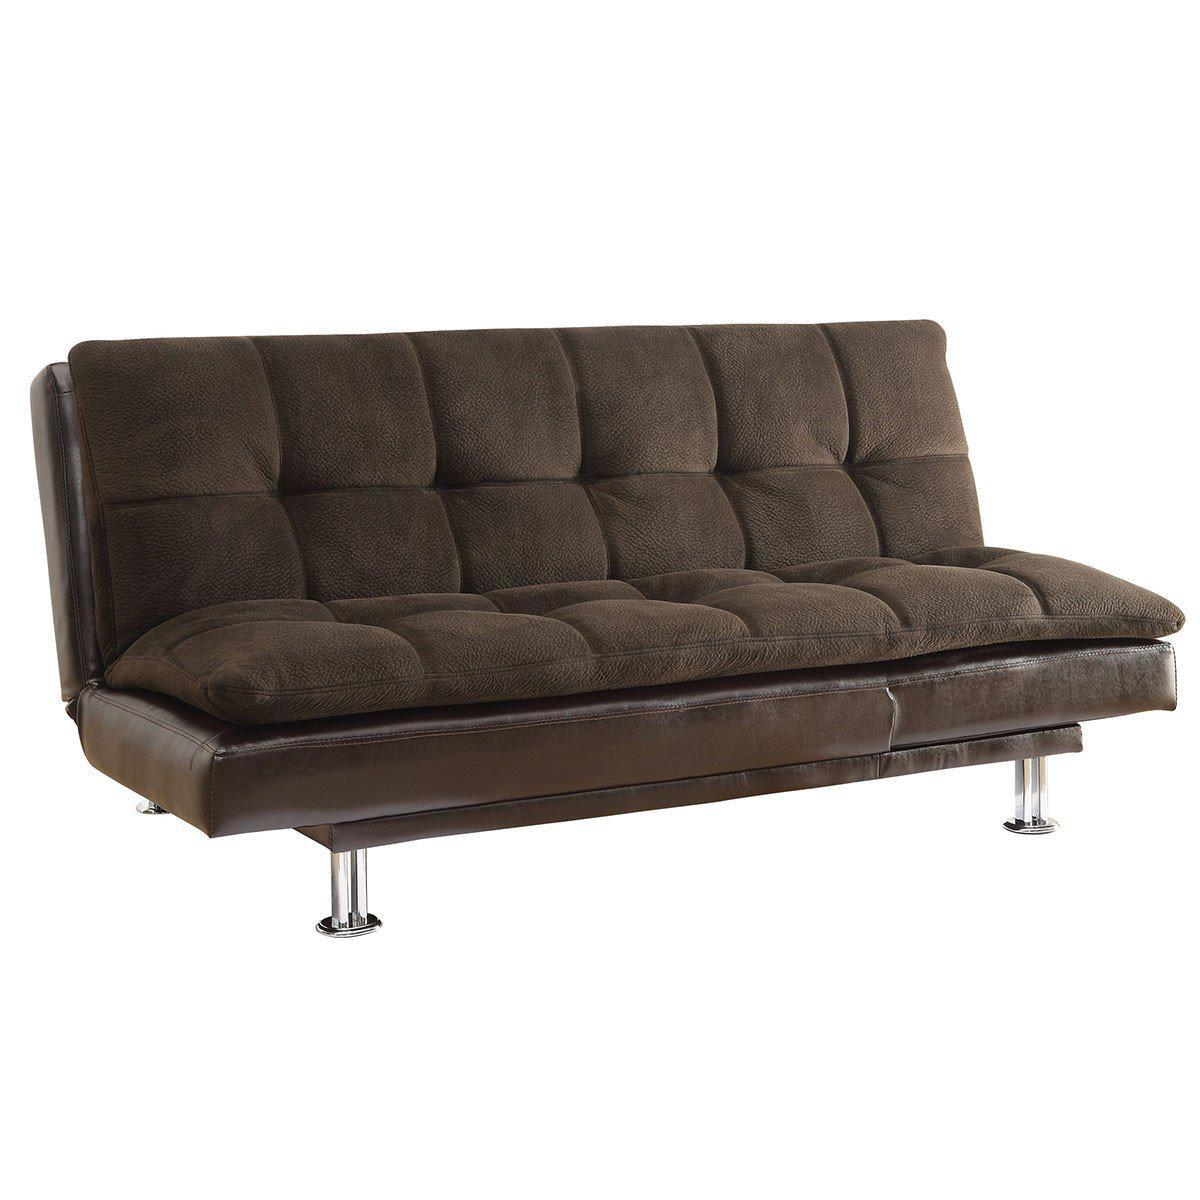 Millie Sofa-sofas-Jennifer Furniture